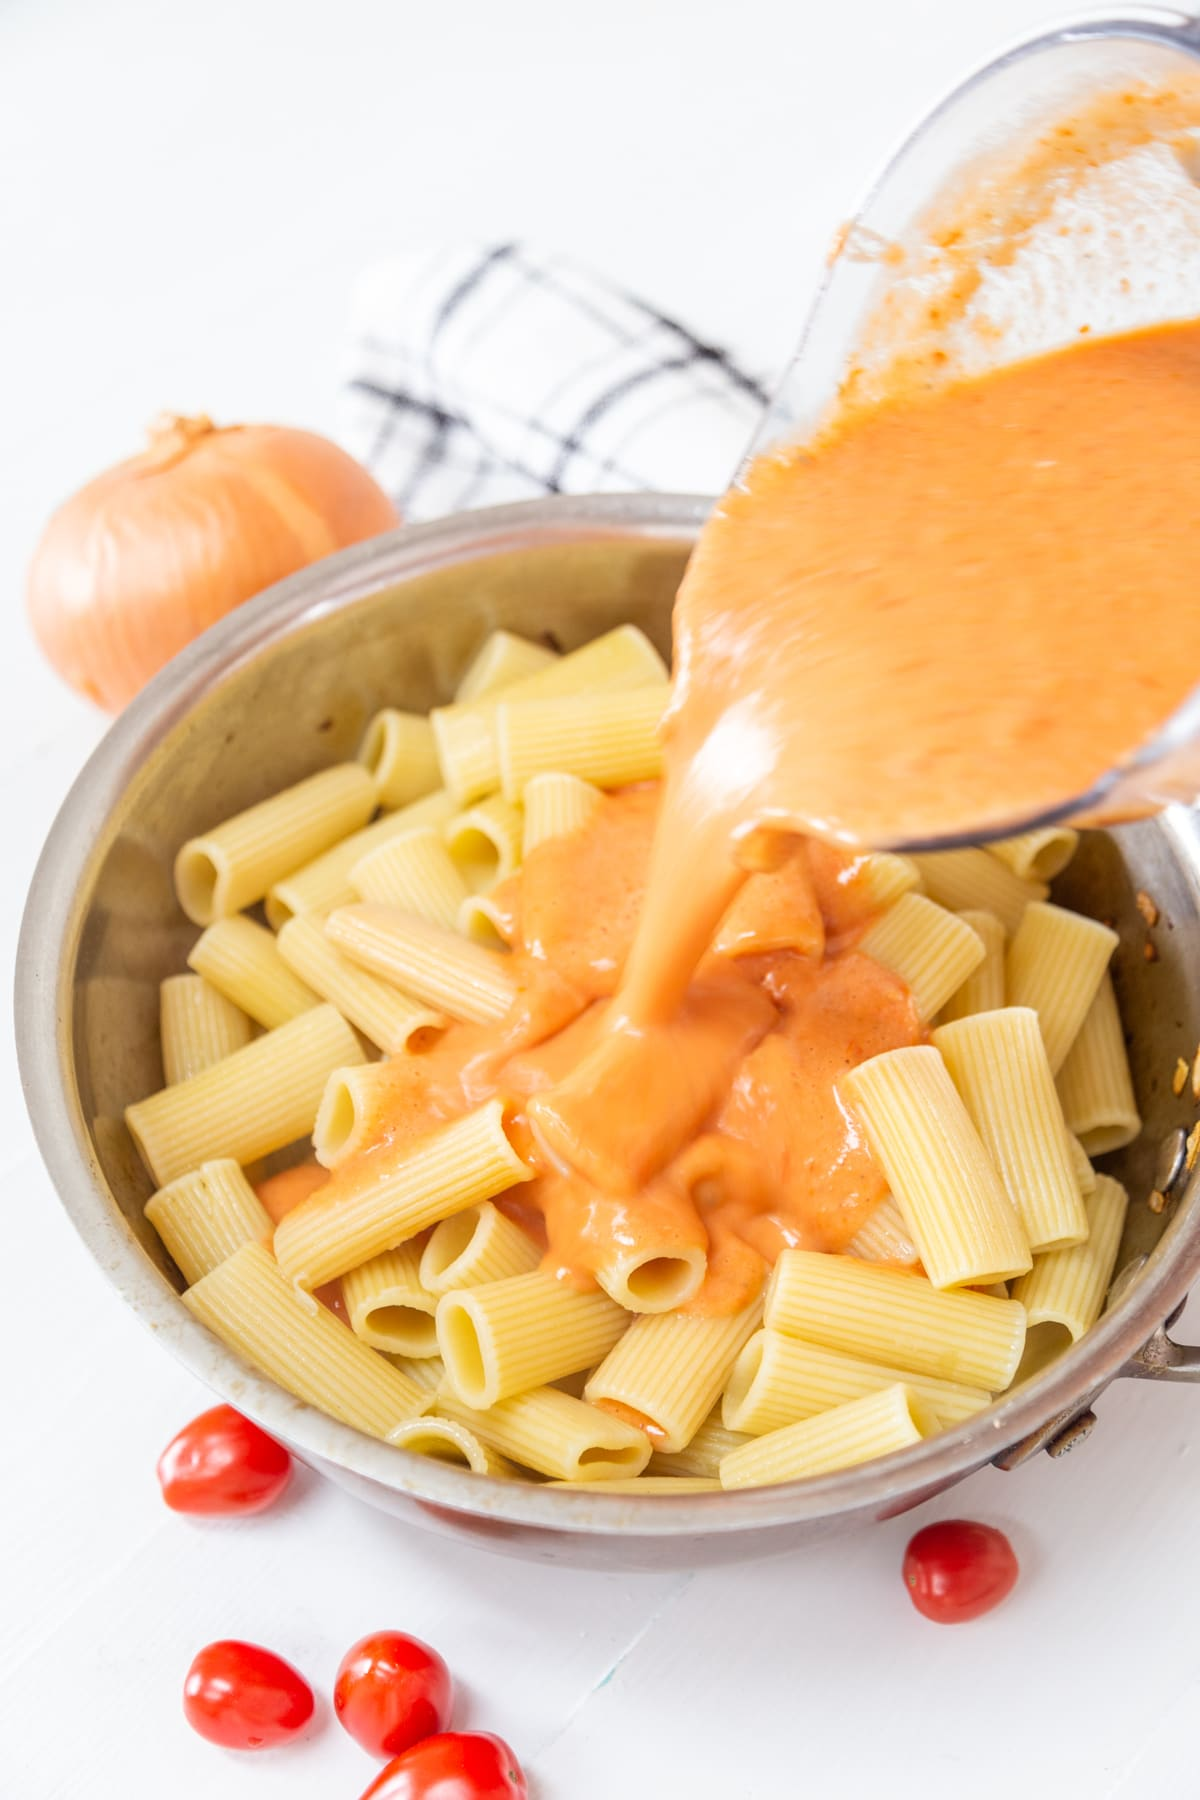 A pan with rigatoni and a pitcher of vodka sauce being poured over the pasta.